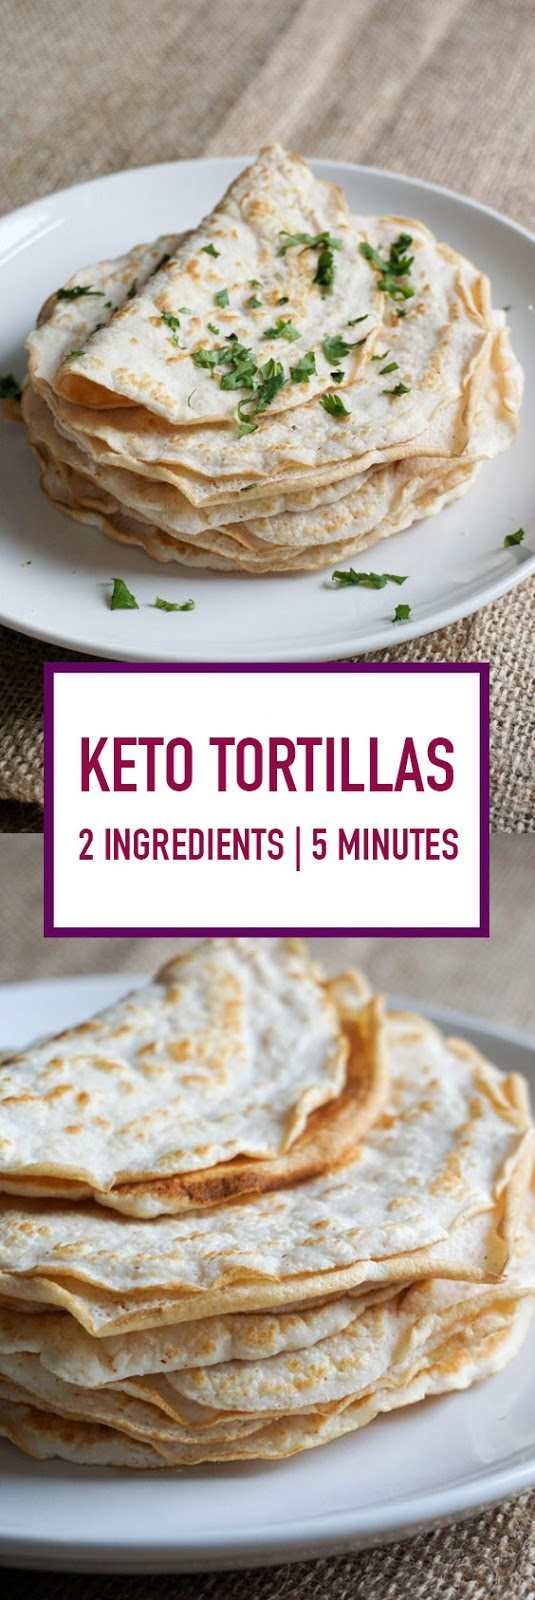 Keto Tortillas with 2 Ingredients Ready in 5 Minutes